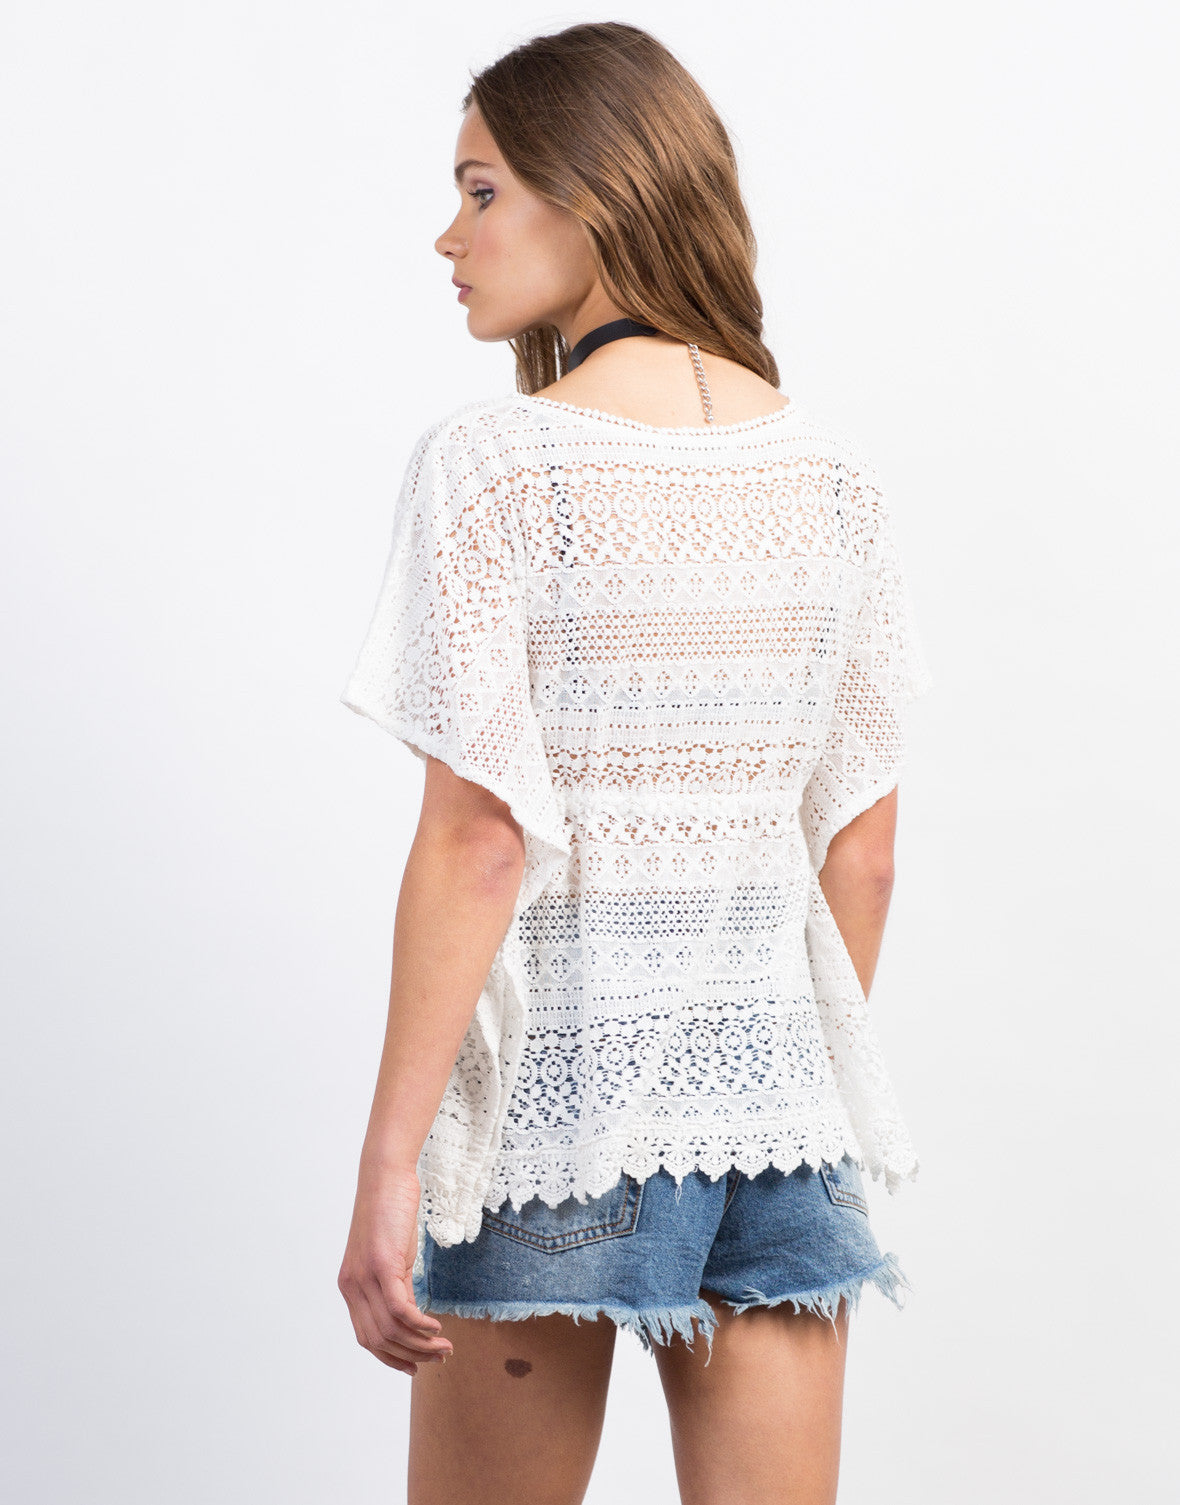 Back View of Crochet Lace Flowy Top